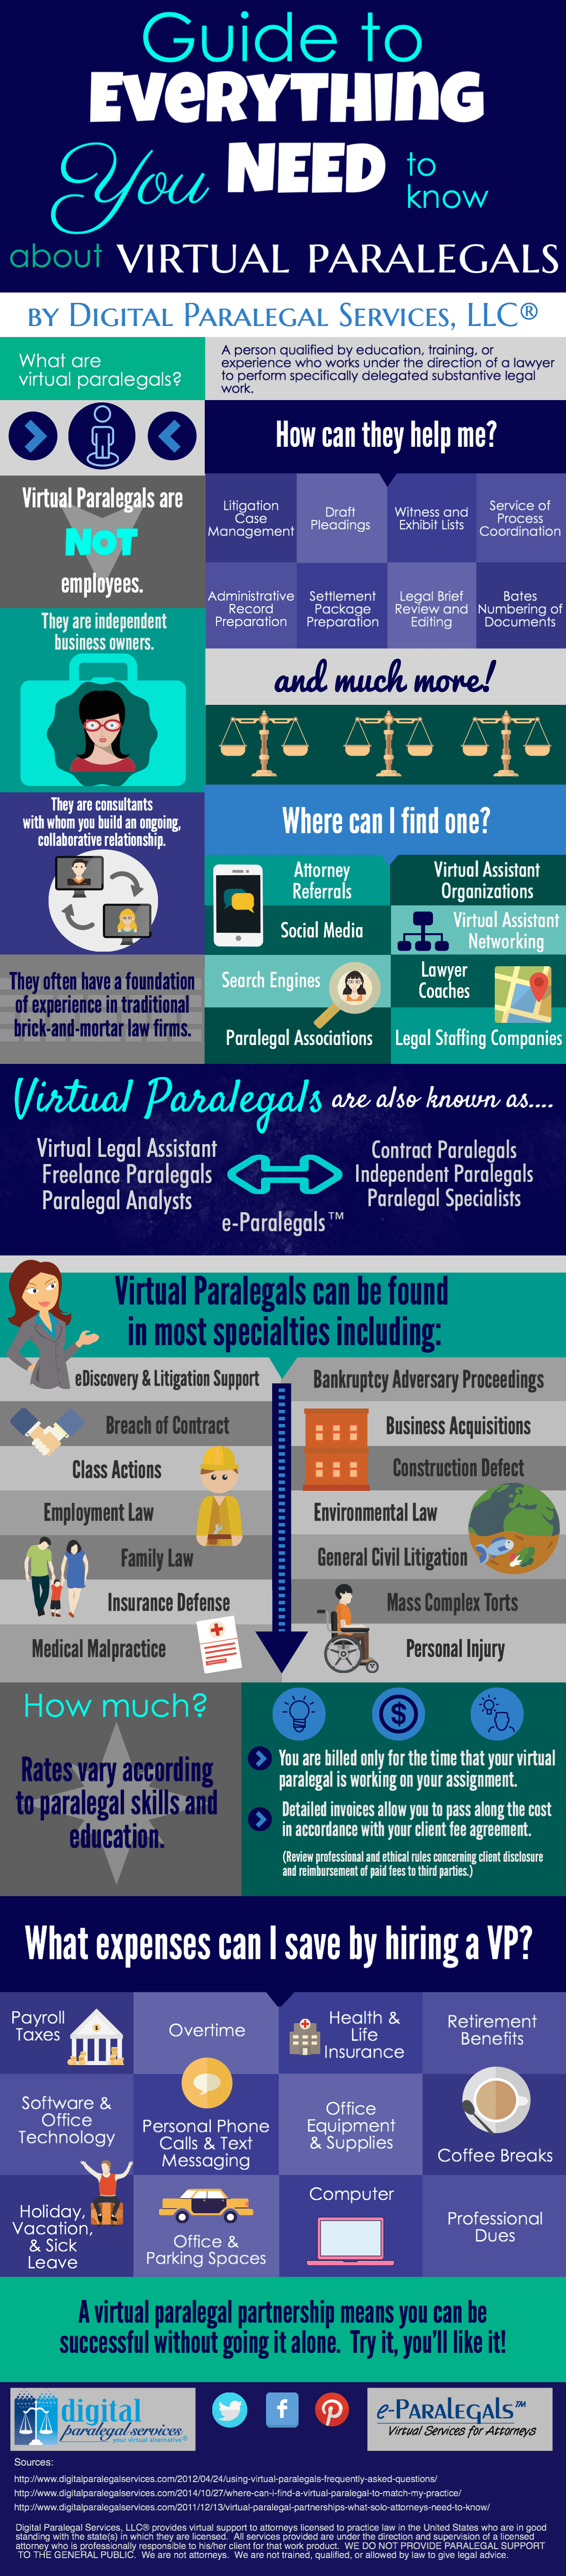 This Infographic Brought To You By Digital Paralegal